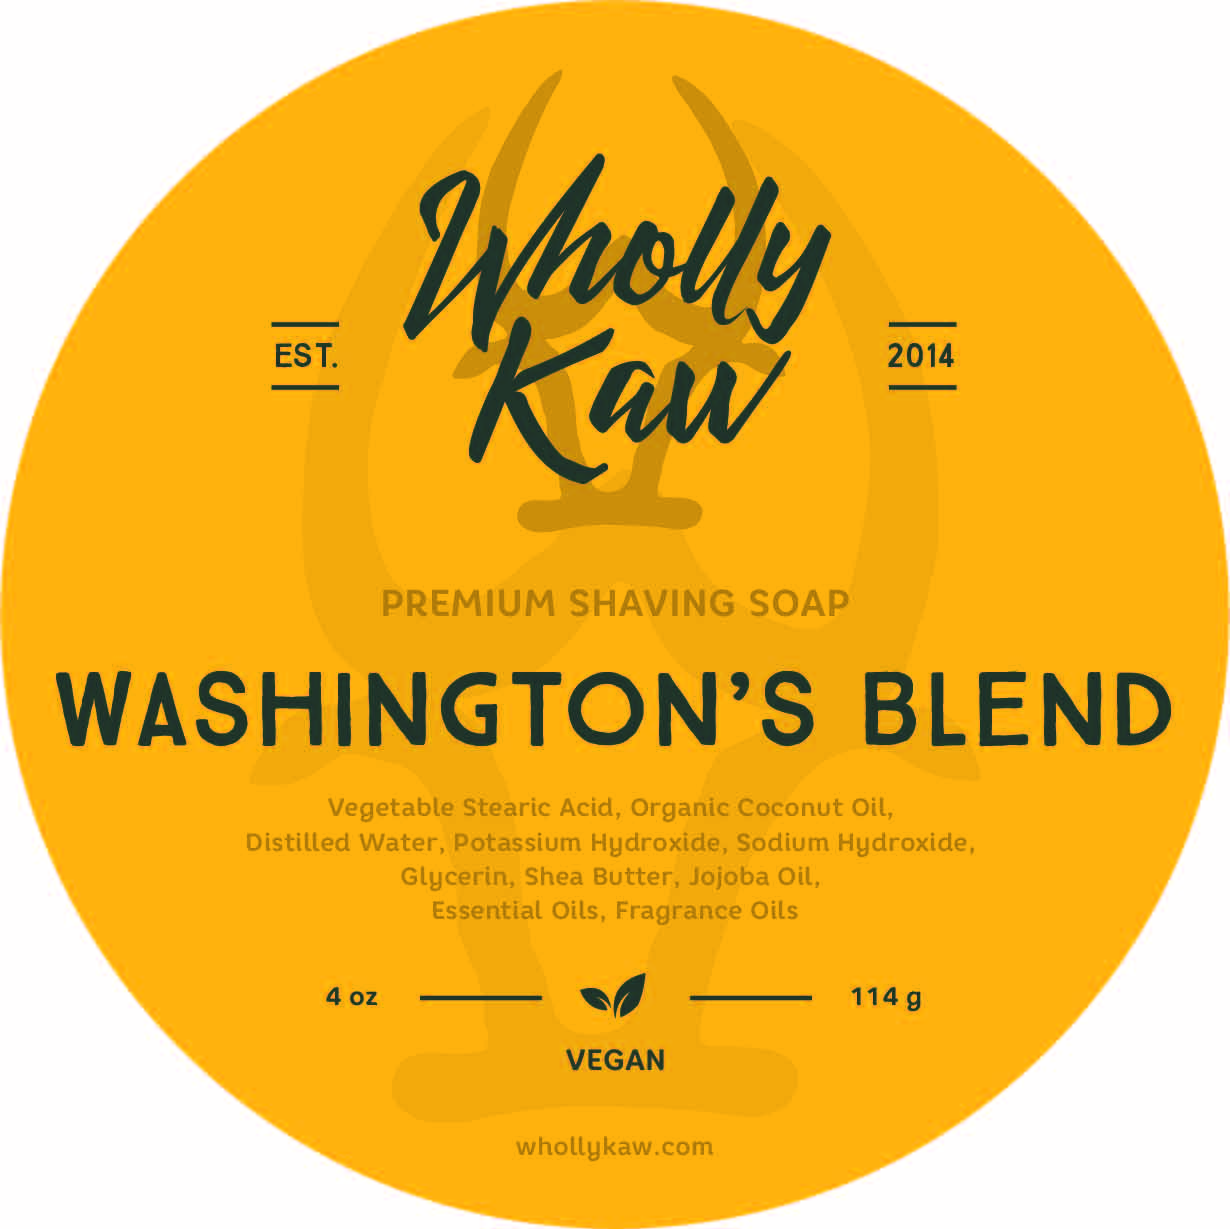 Wholly Kaw - Washington's Blend - Soap (Vegan) image